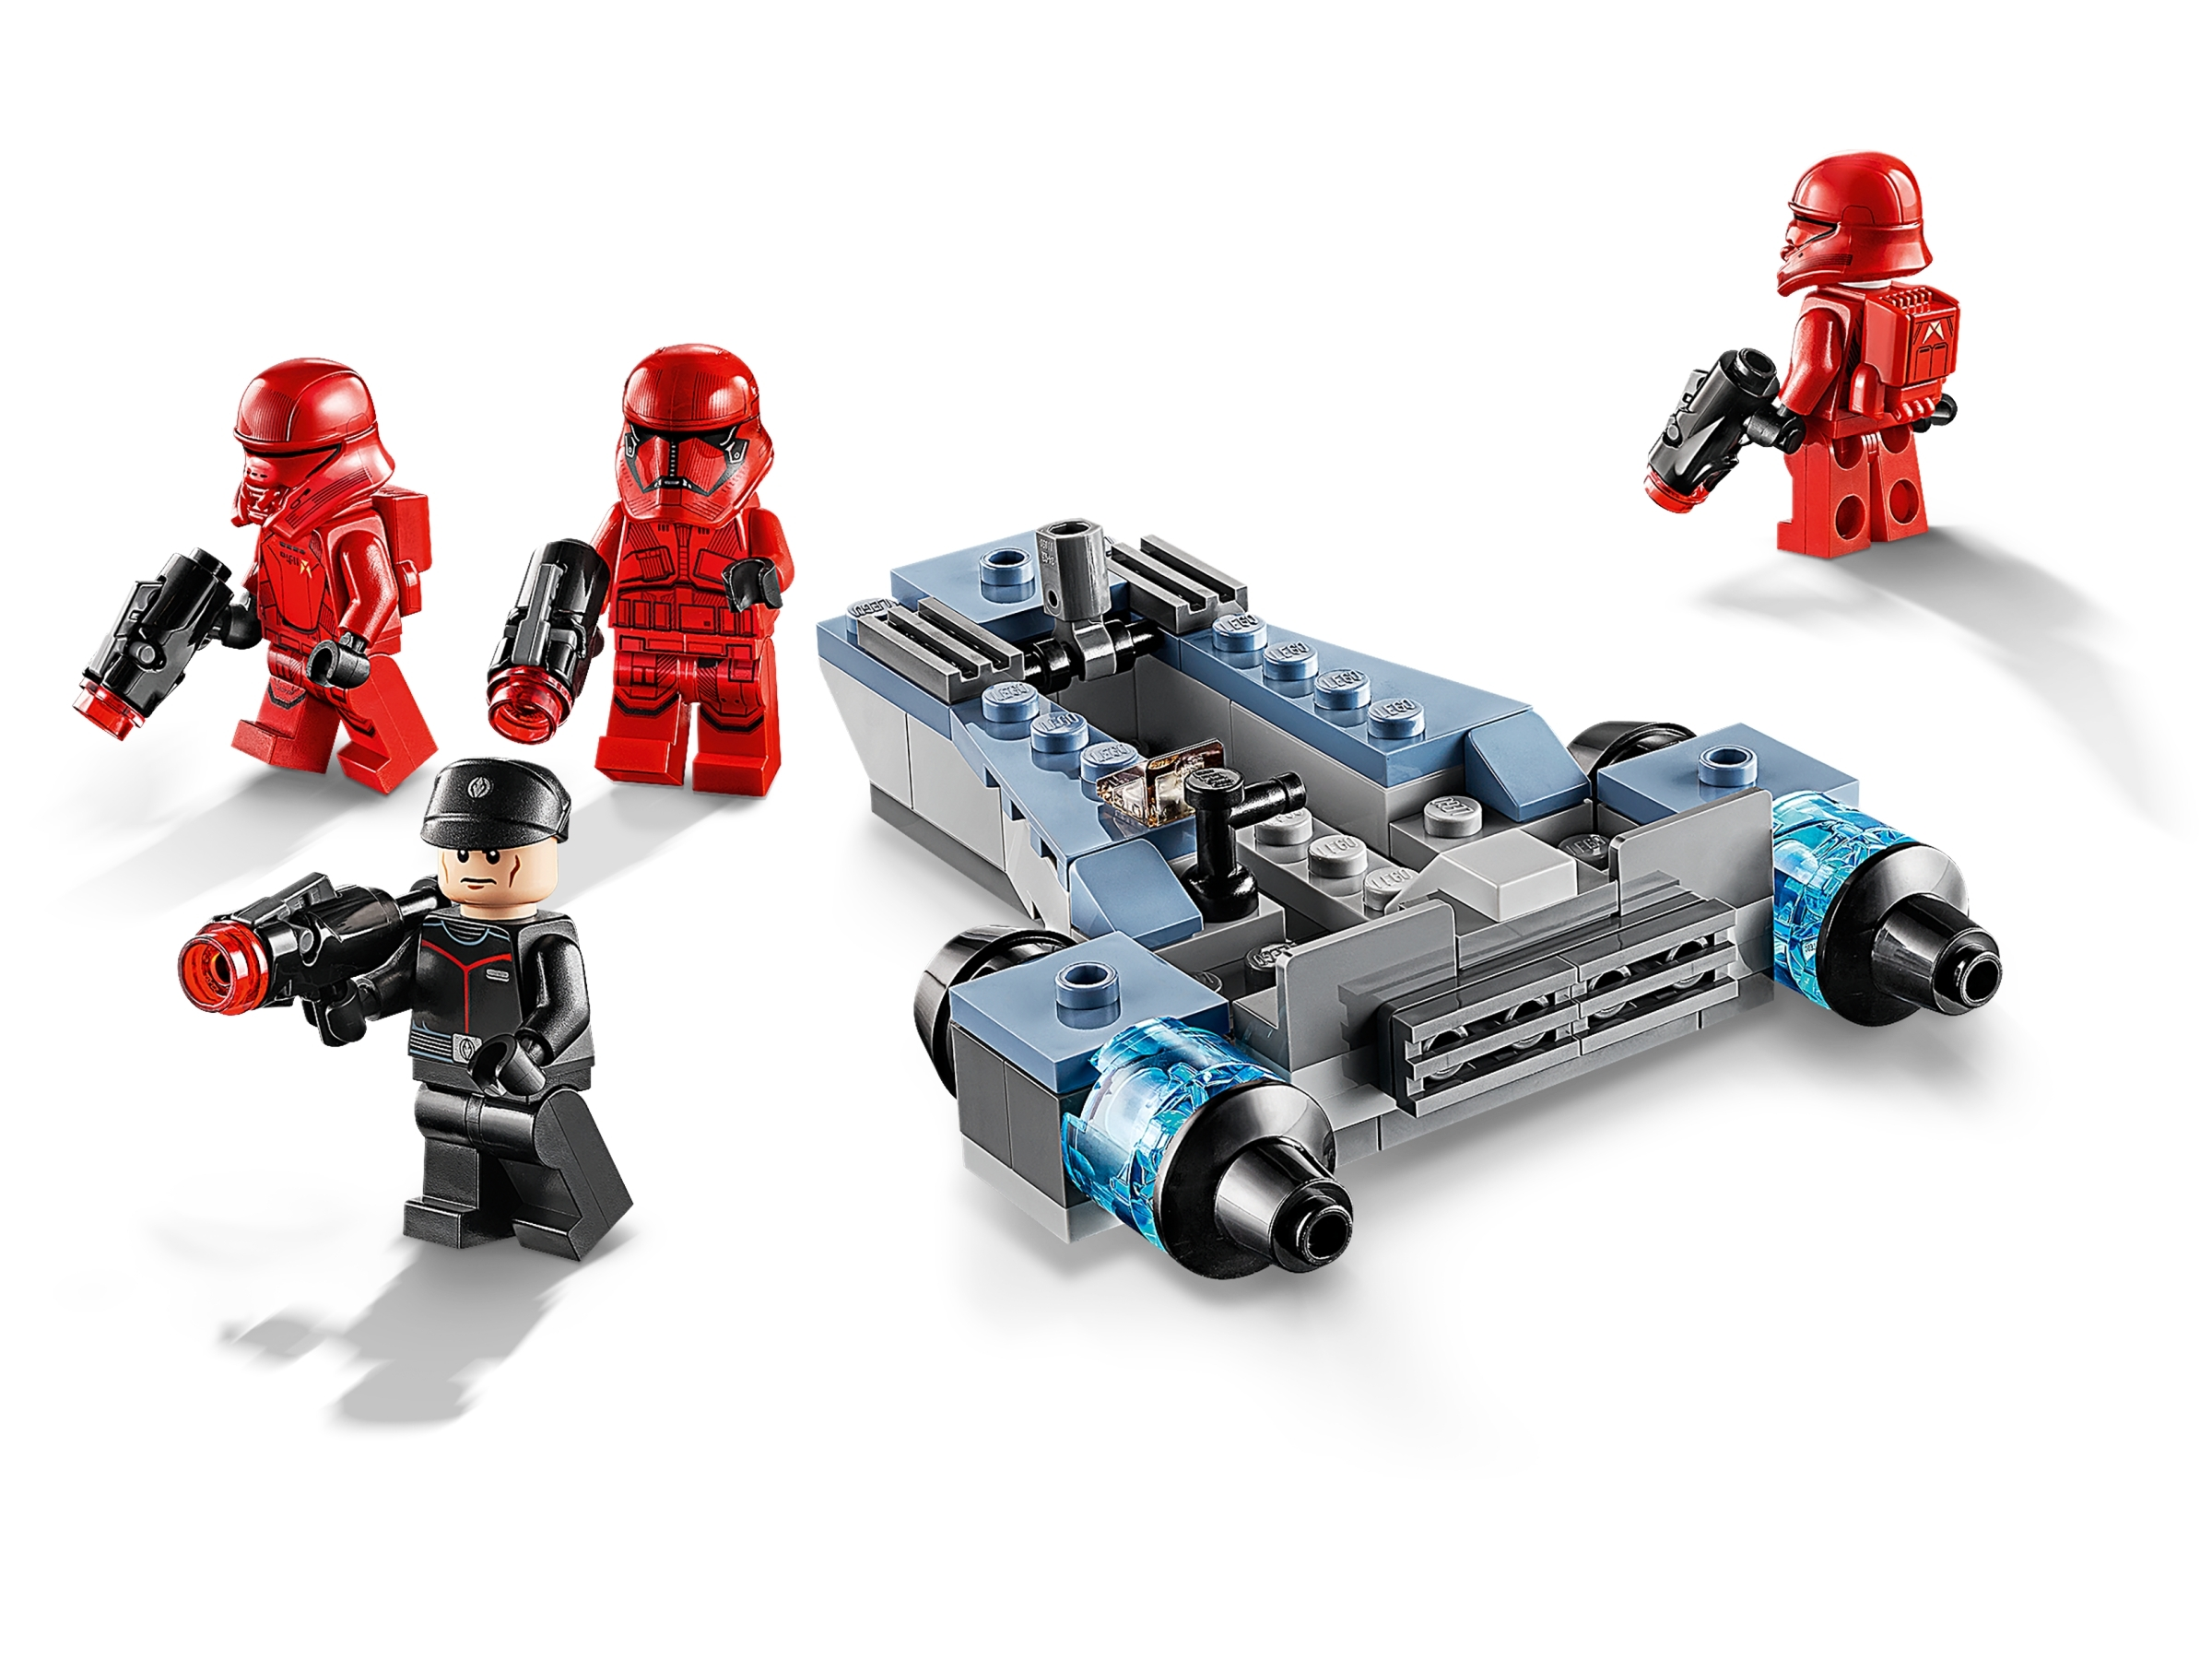 LEGO StarWars 75266 Sith Troopers Battle Pack